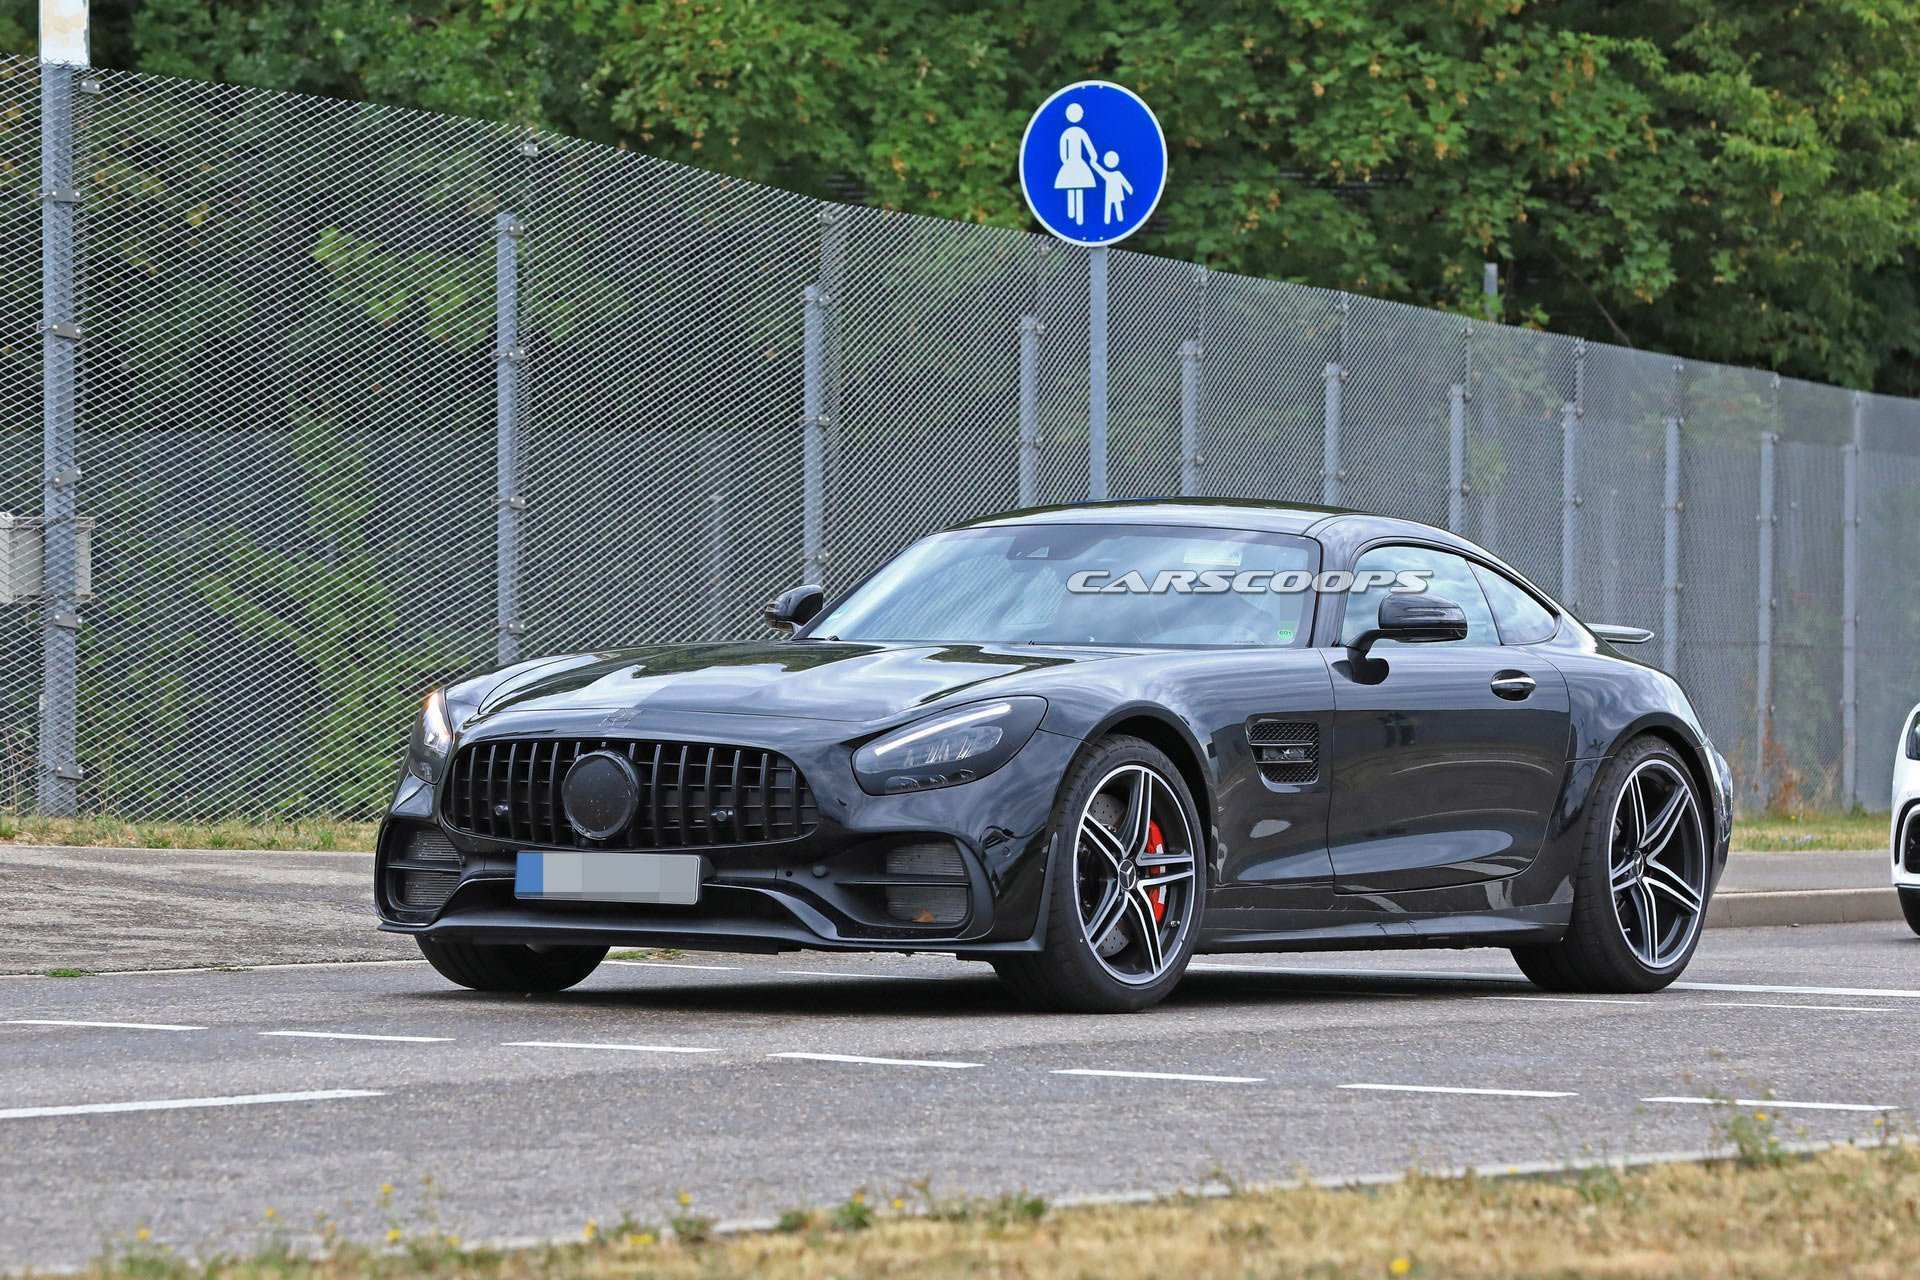 85 Best Review Mercedes Amg Gt 2020 Spesification by Mercedes Amg Gt 2020